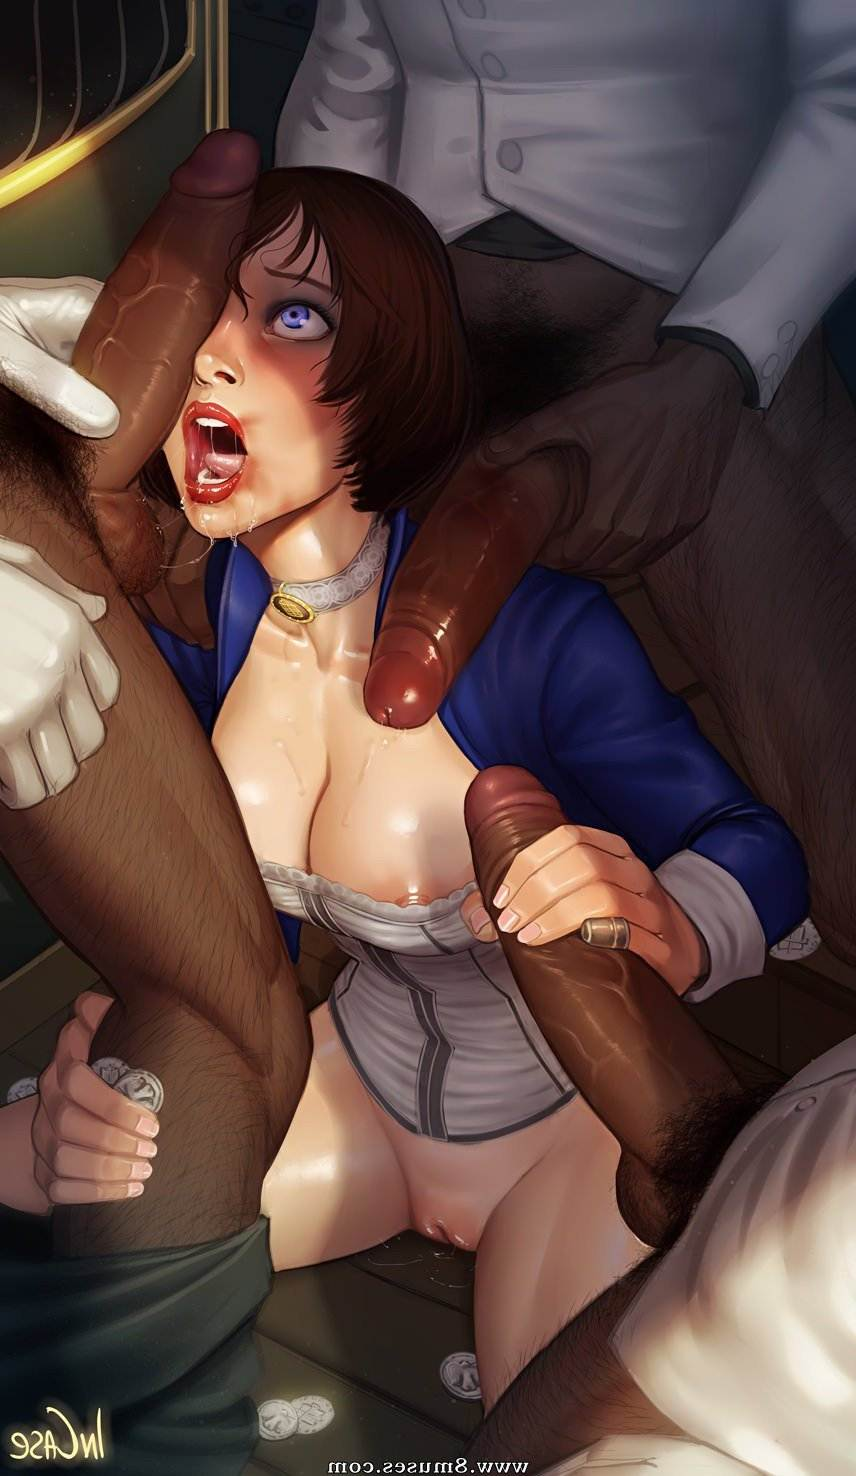 Incase-Comics/Artwork Artwork__8muses_-_Sex_and_Porn_Comics_278.jpg